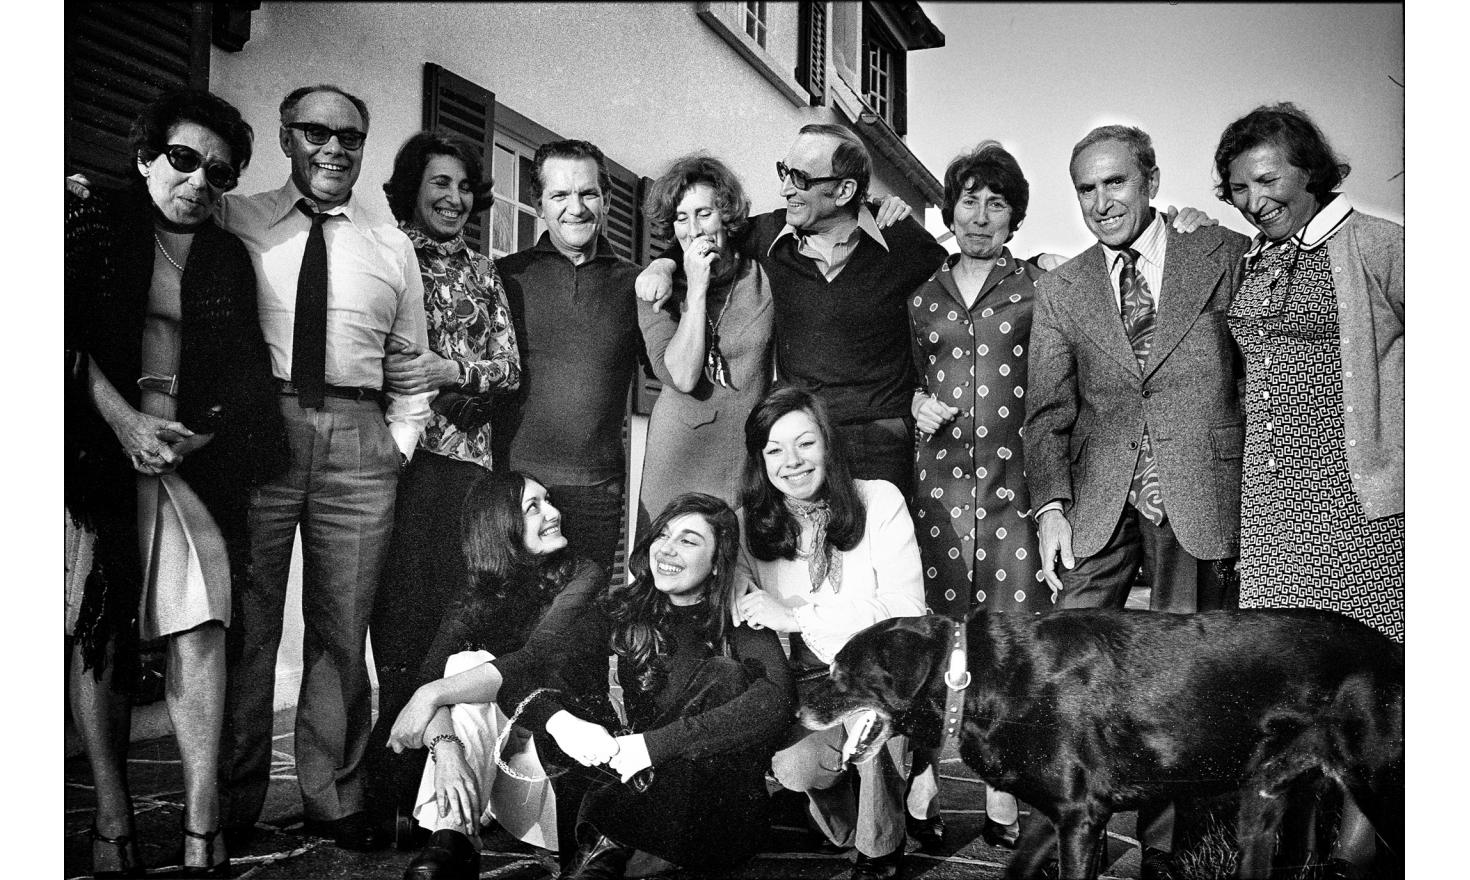 Family meeting at my parent's house, for the visit of my uncle and aunt from Canada. Igny, 1974.